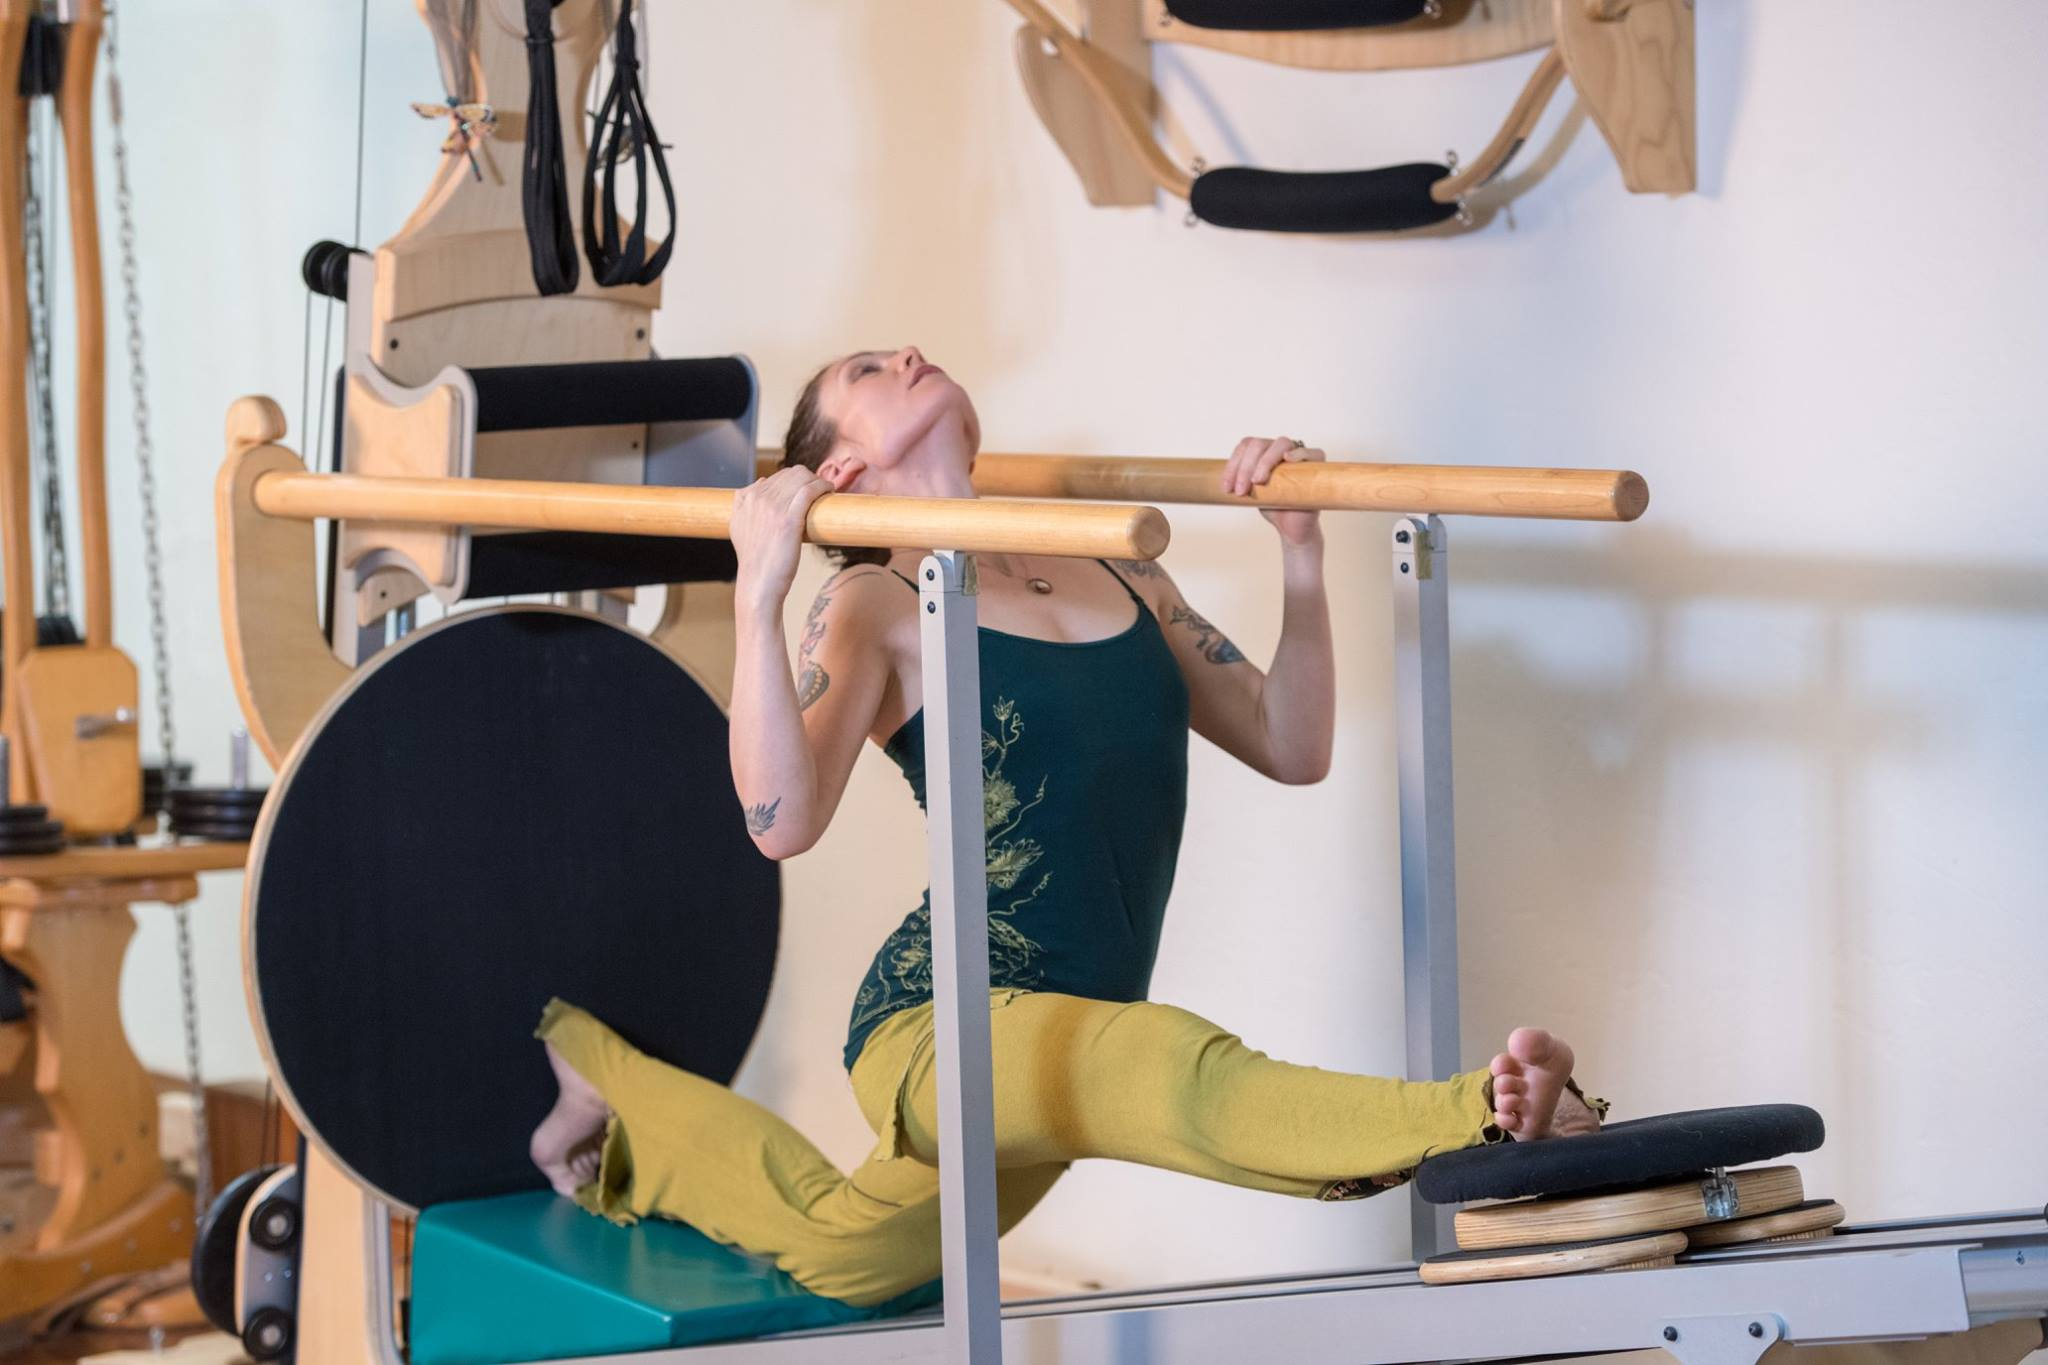 domini anne specialized gyrotonic and gyrokinesis master trainer on the gyrotonic and yoga communities california